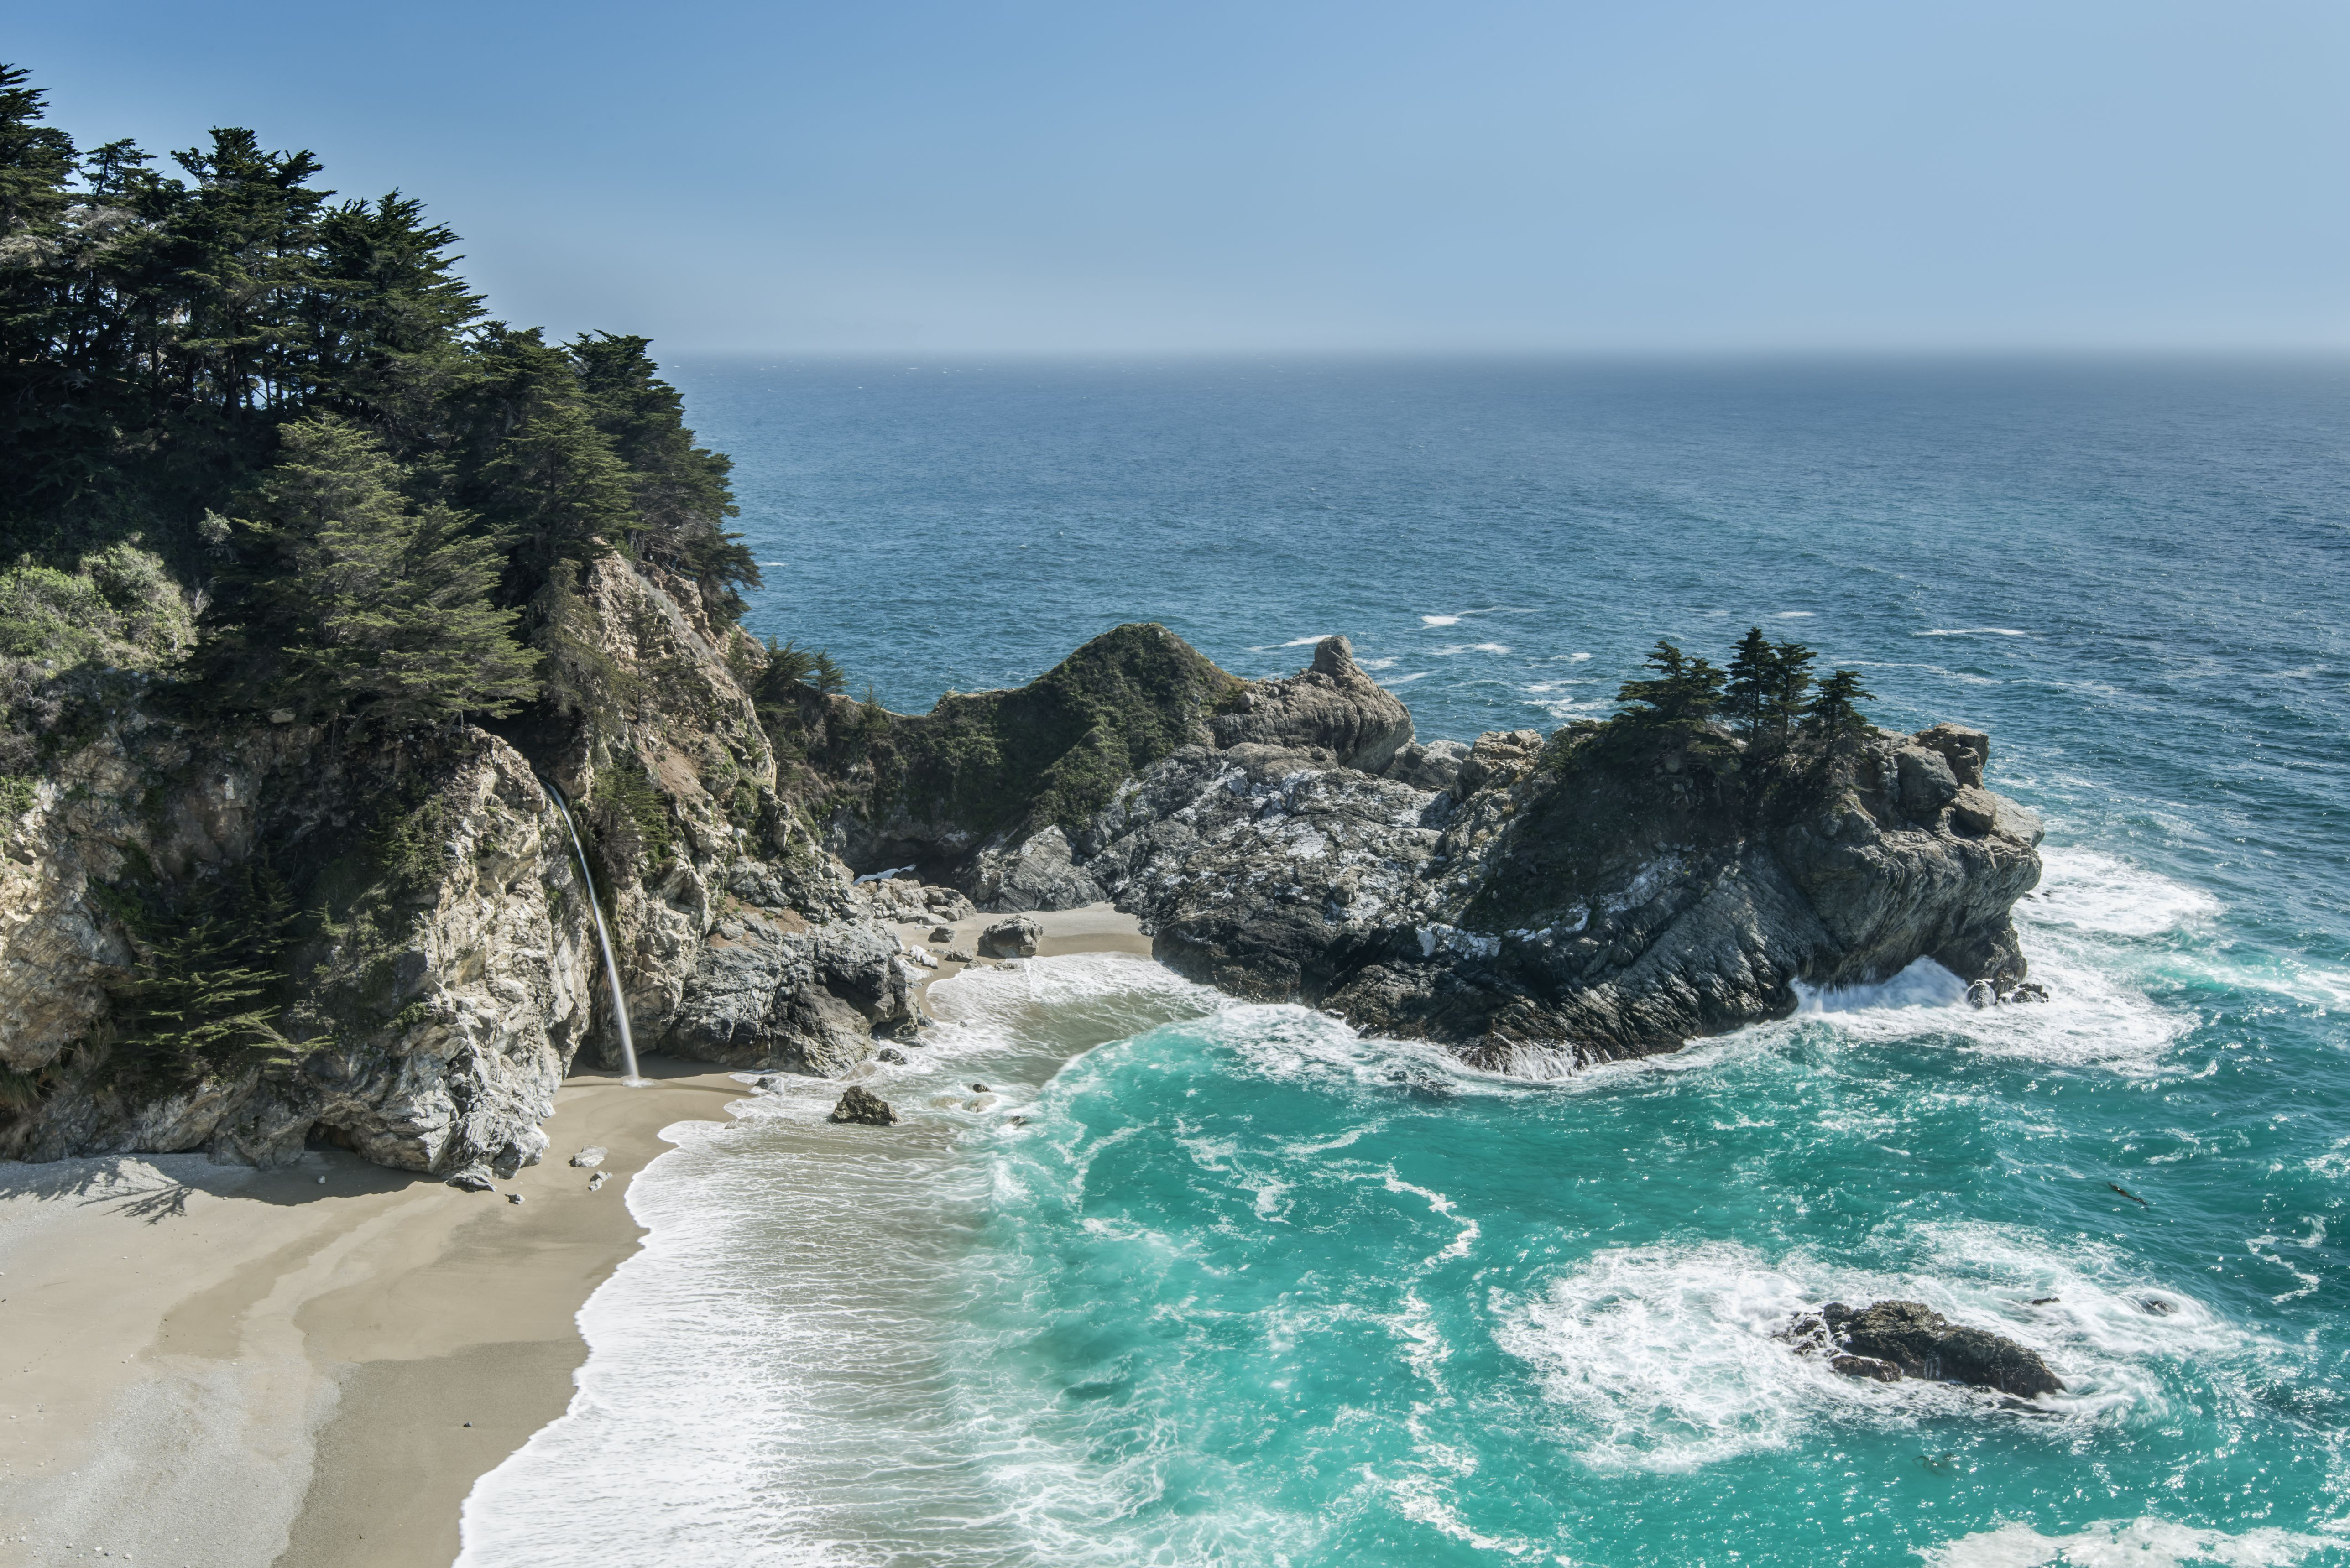 The Best Time to Visit California's Central Coast